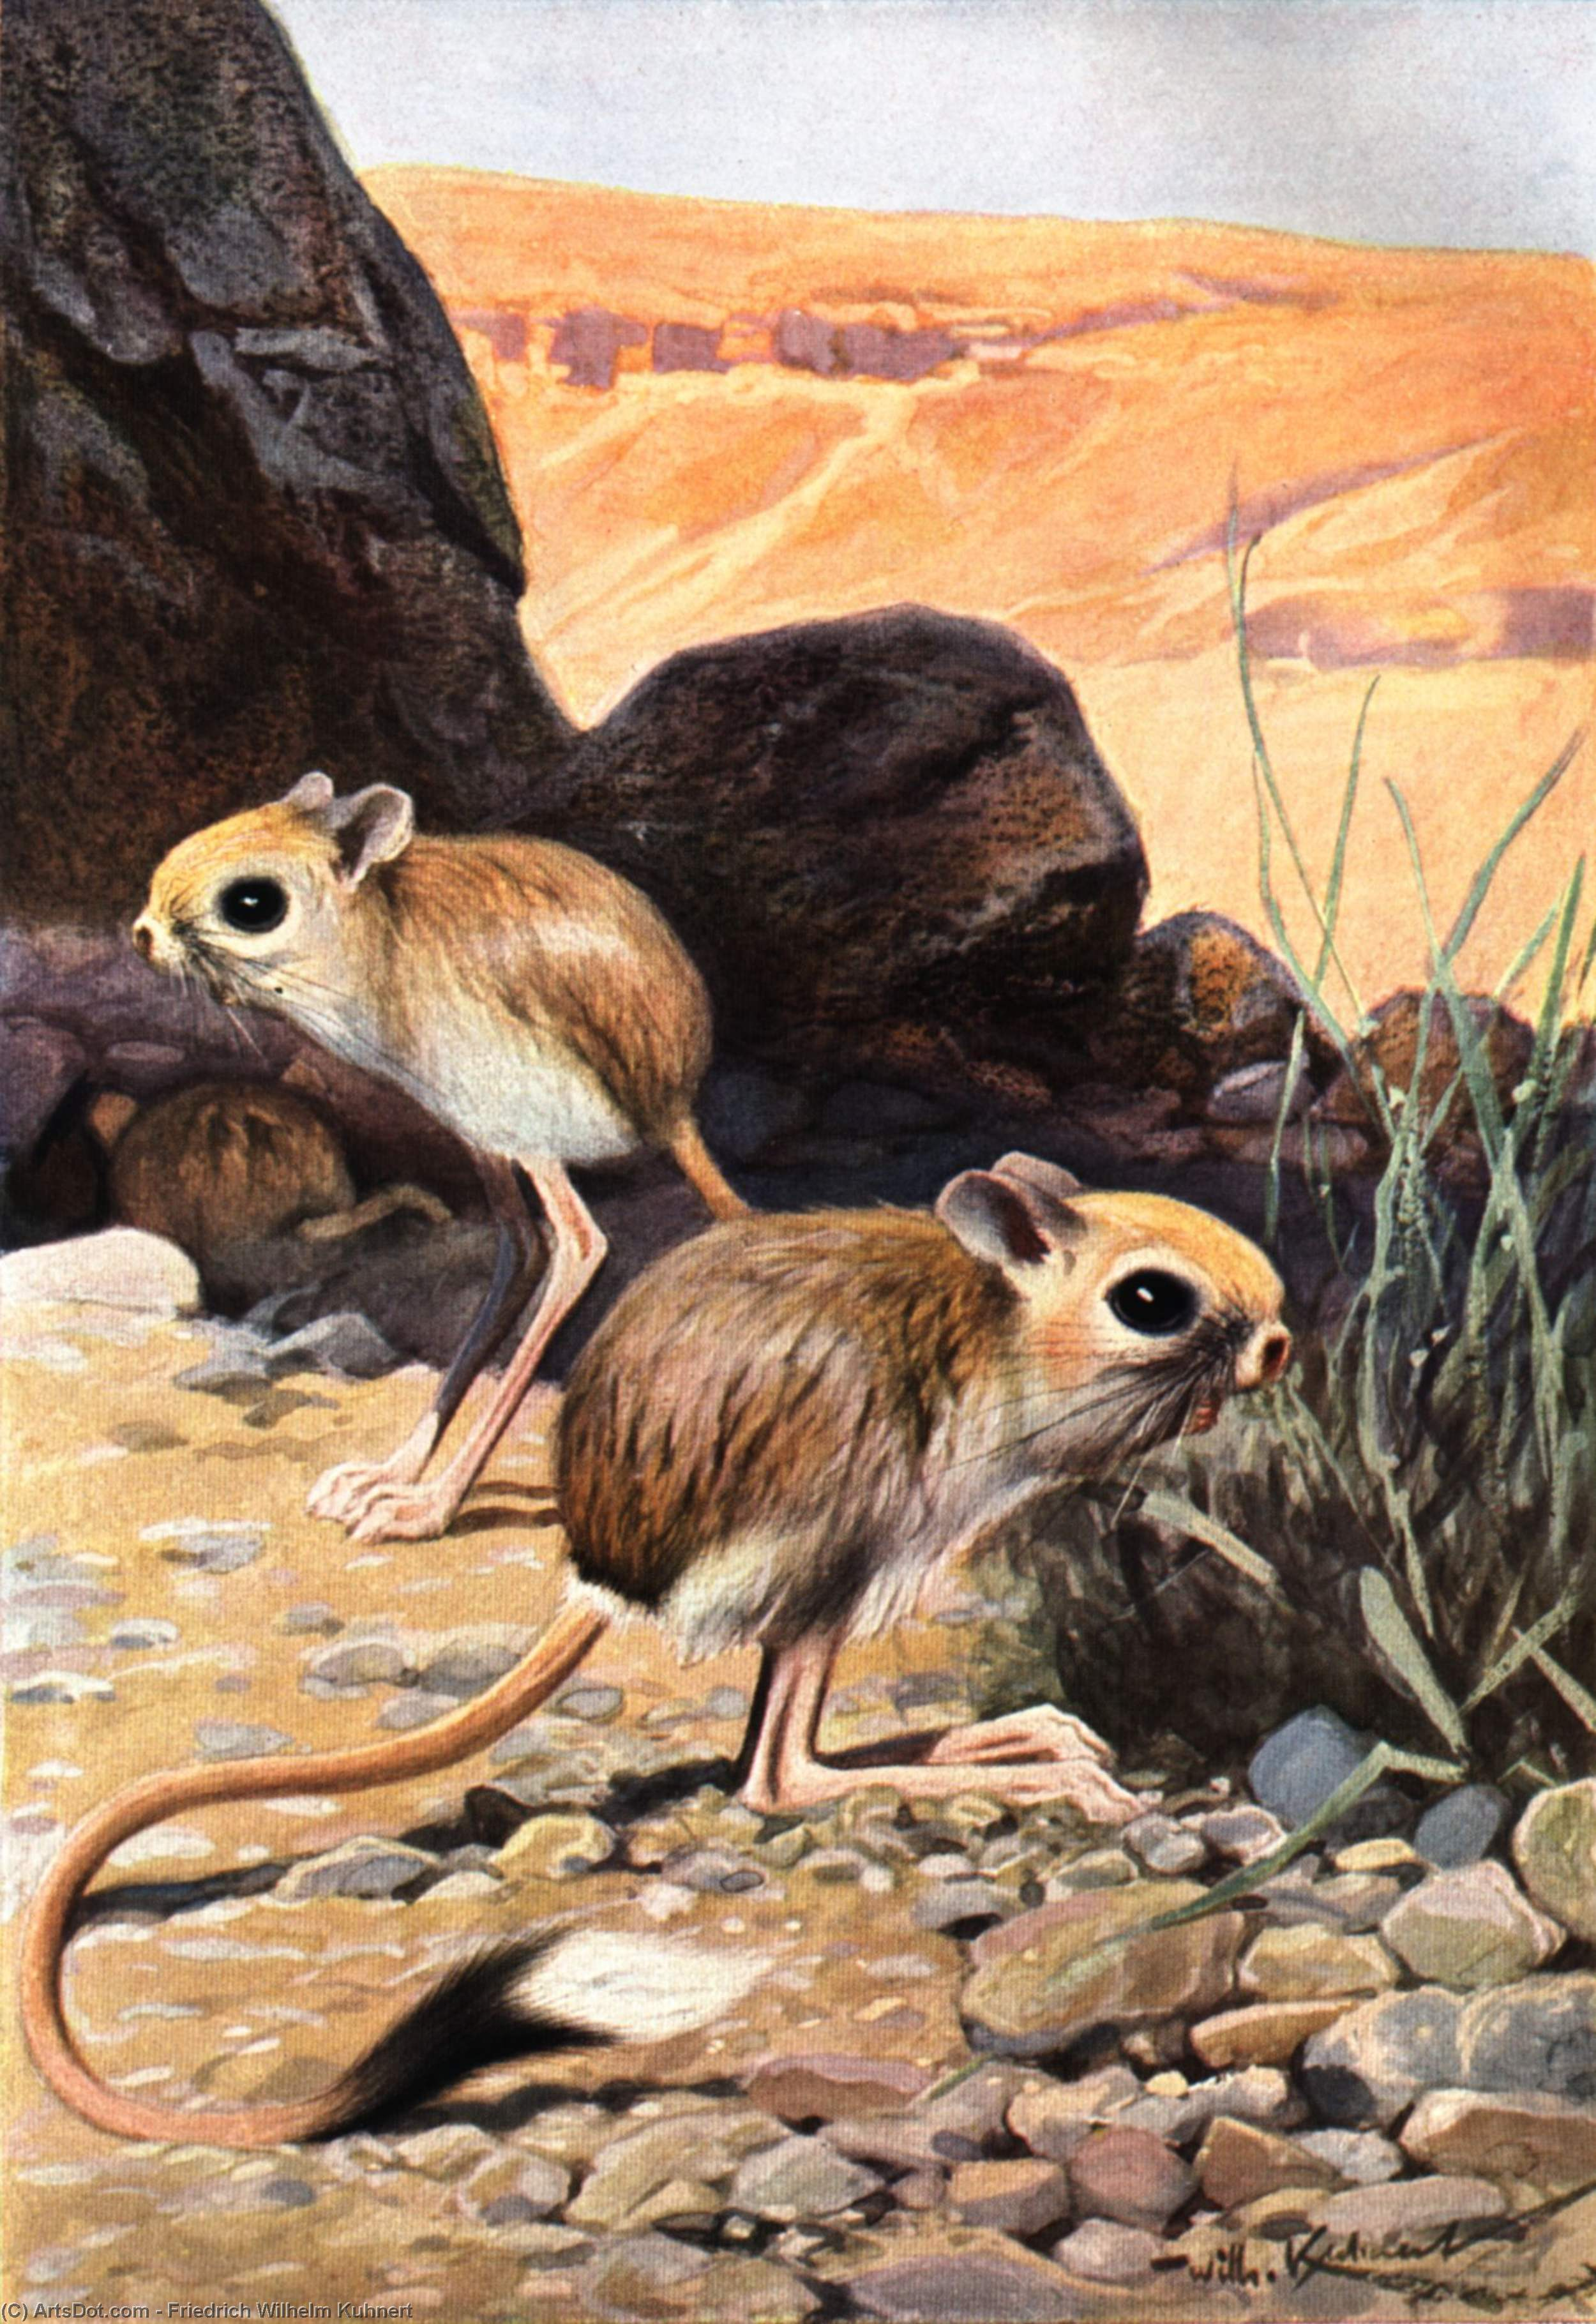 Wikioo.org - The Encyclopedia of Fine Arts - Painting, Artwork by Friedrich Wilhelm Kuhnert - Lesser Egyptian Jerboa